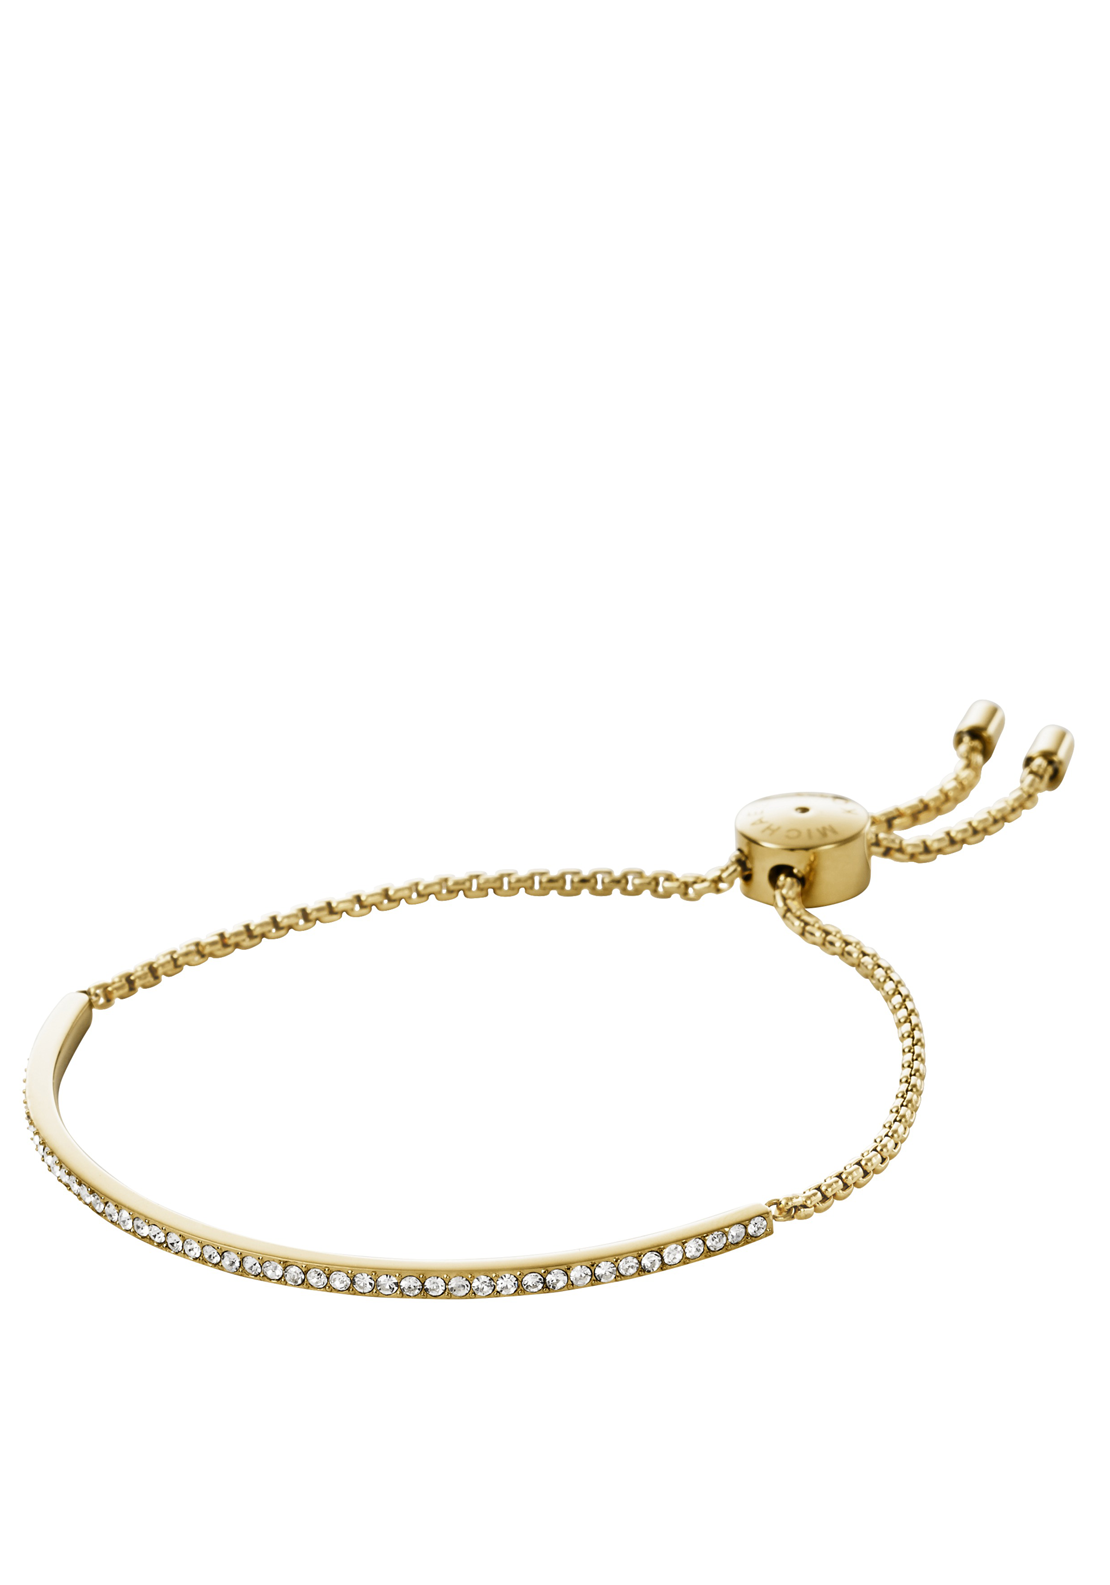 Michael Kors Womens Pave Slider Bracelet, Gold